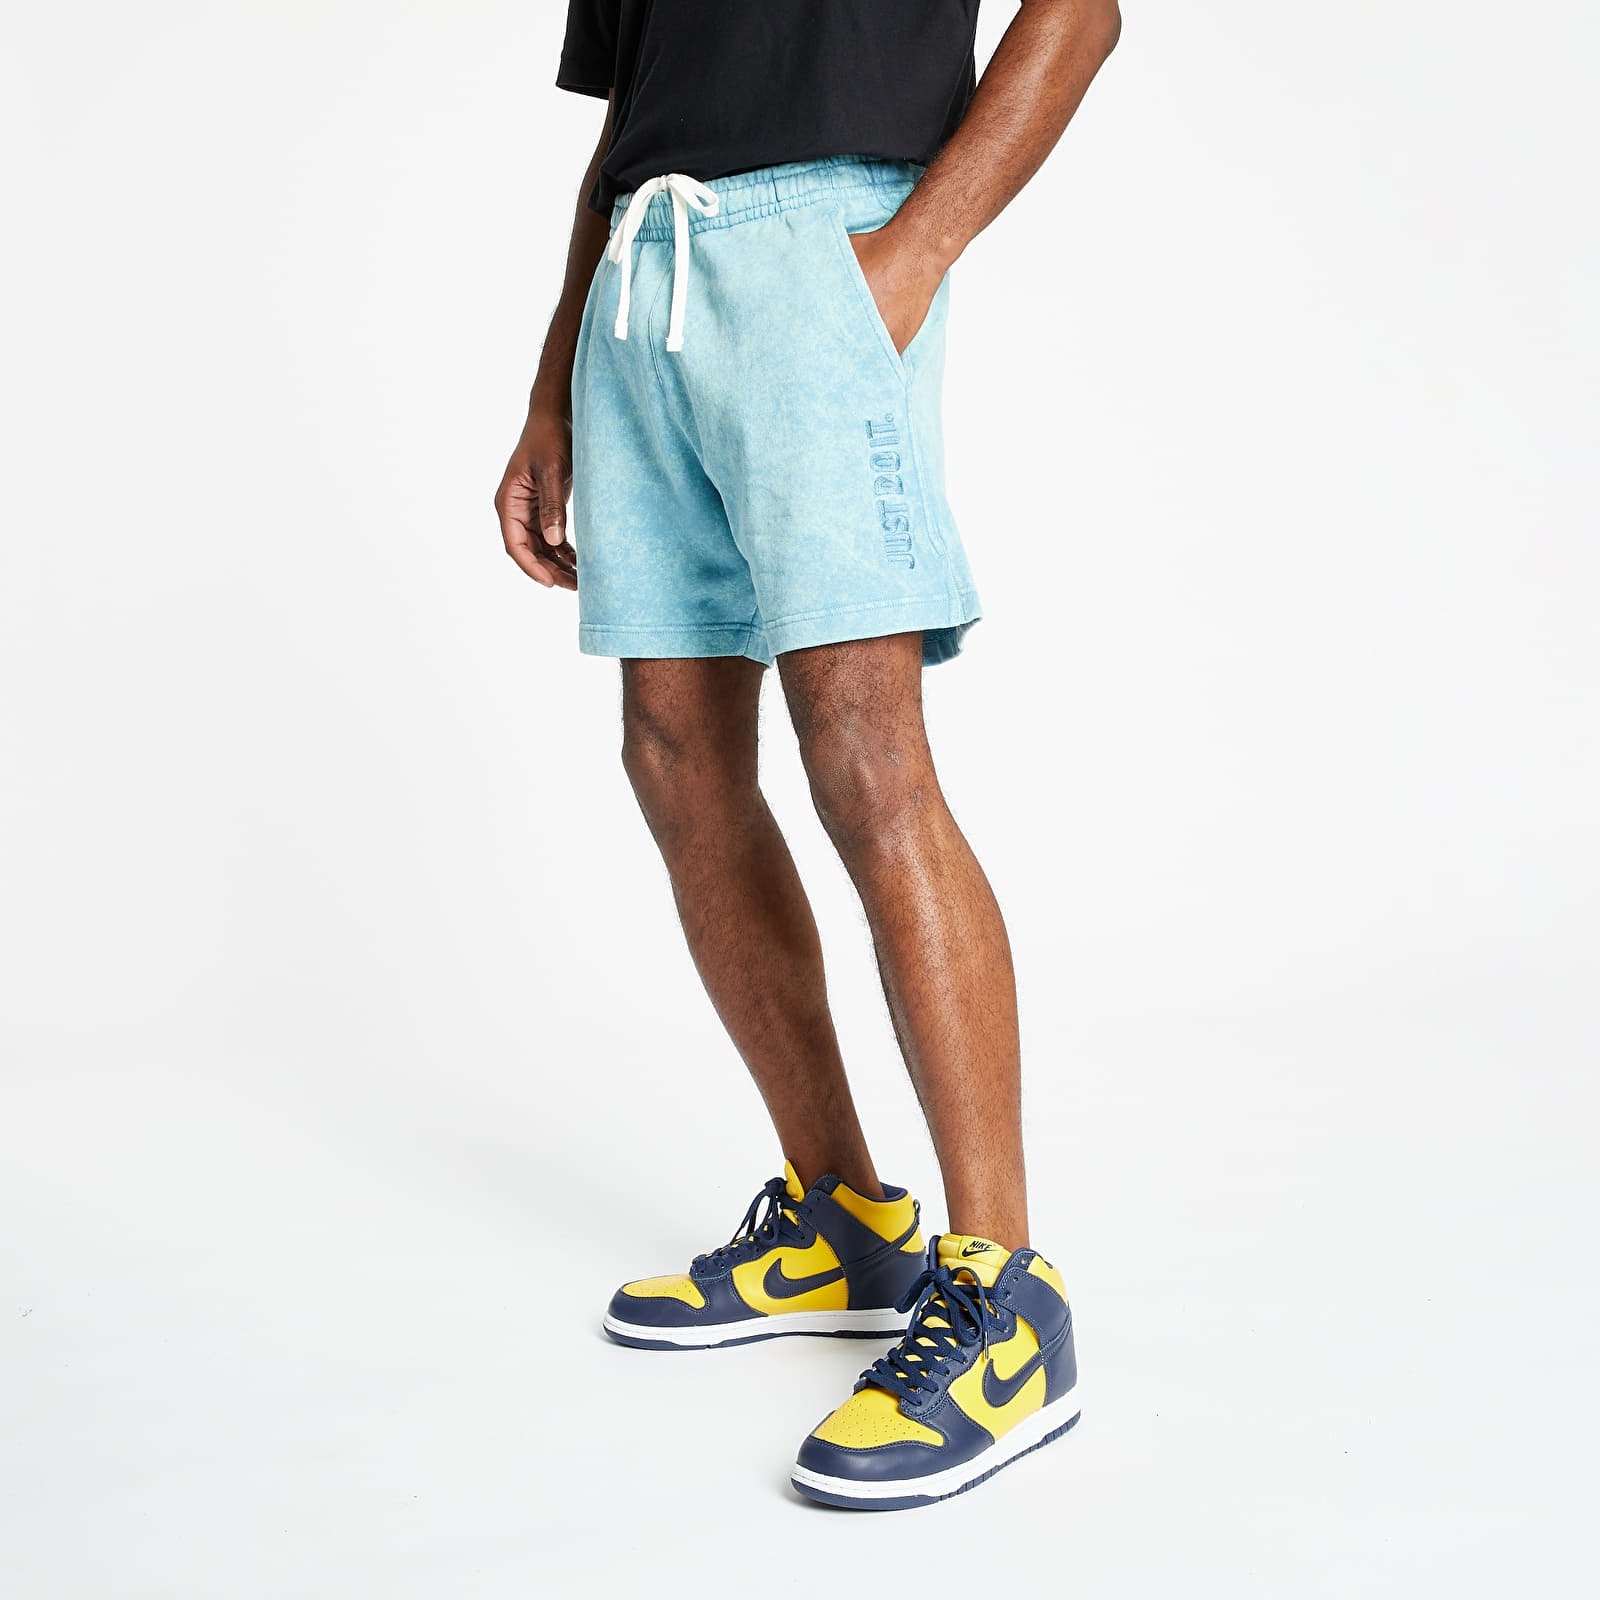 Nike Sportswear Just Do It Wash Shorts Cerulean/ Cerulean